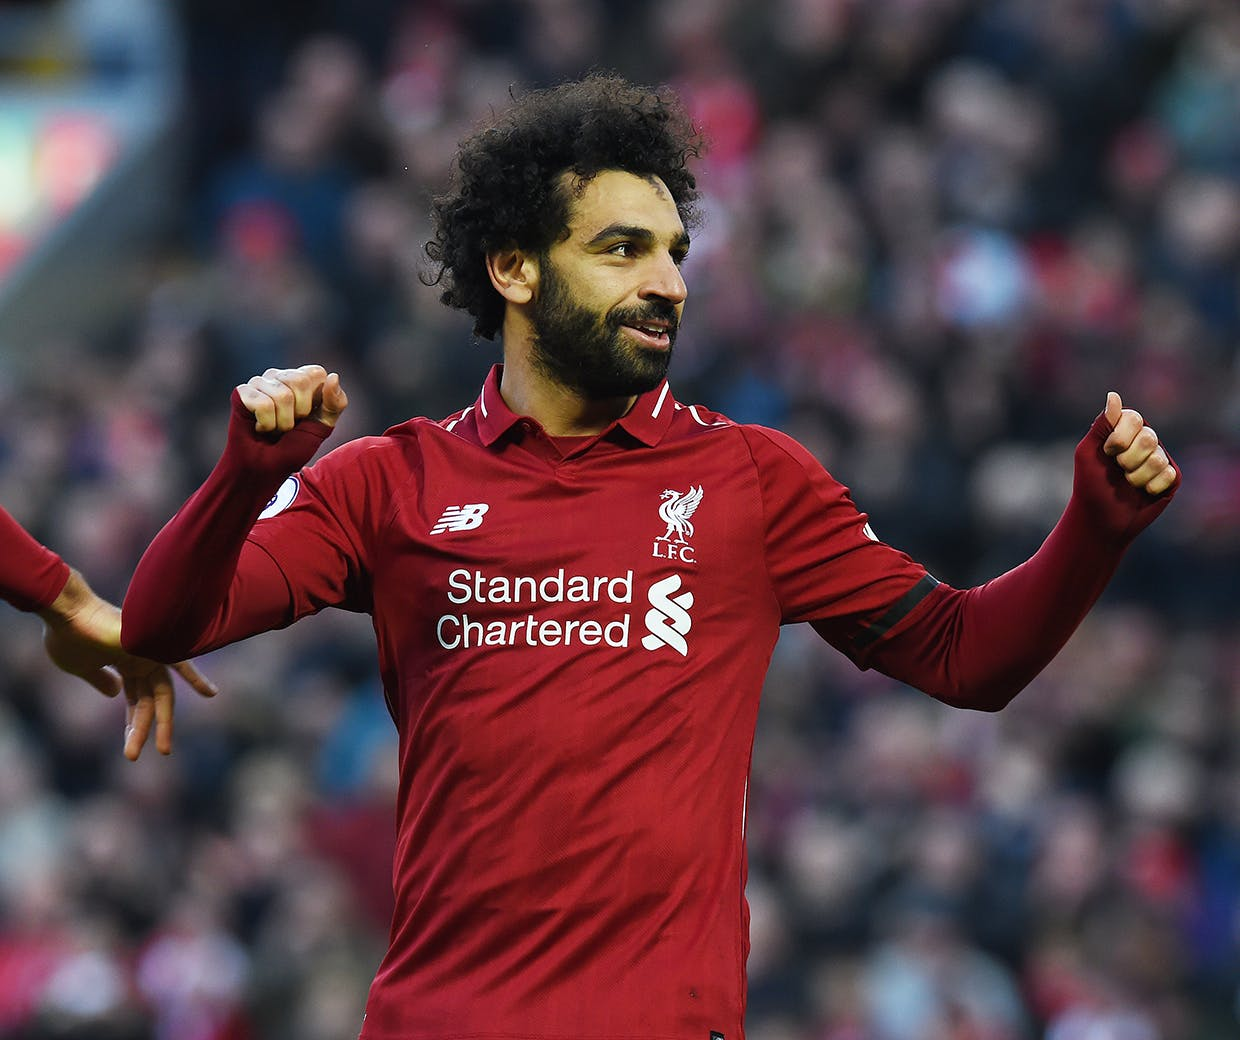 25be46cec60 How Liverpool FC looks to 'compete at the highest level' both on and off  the pitch